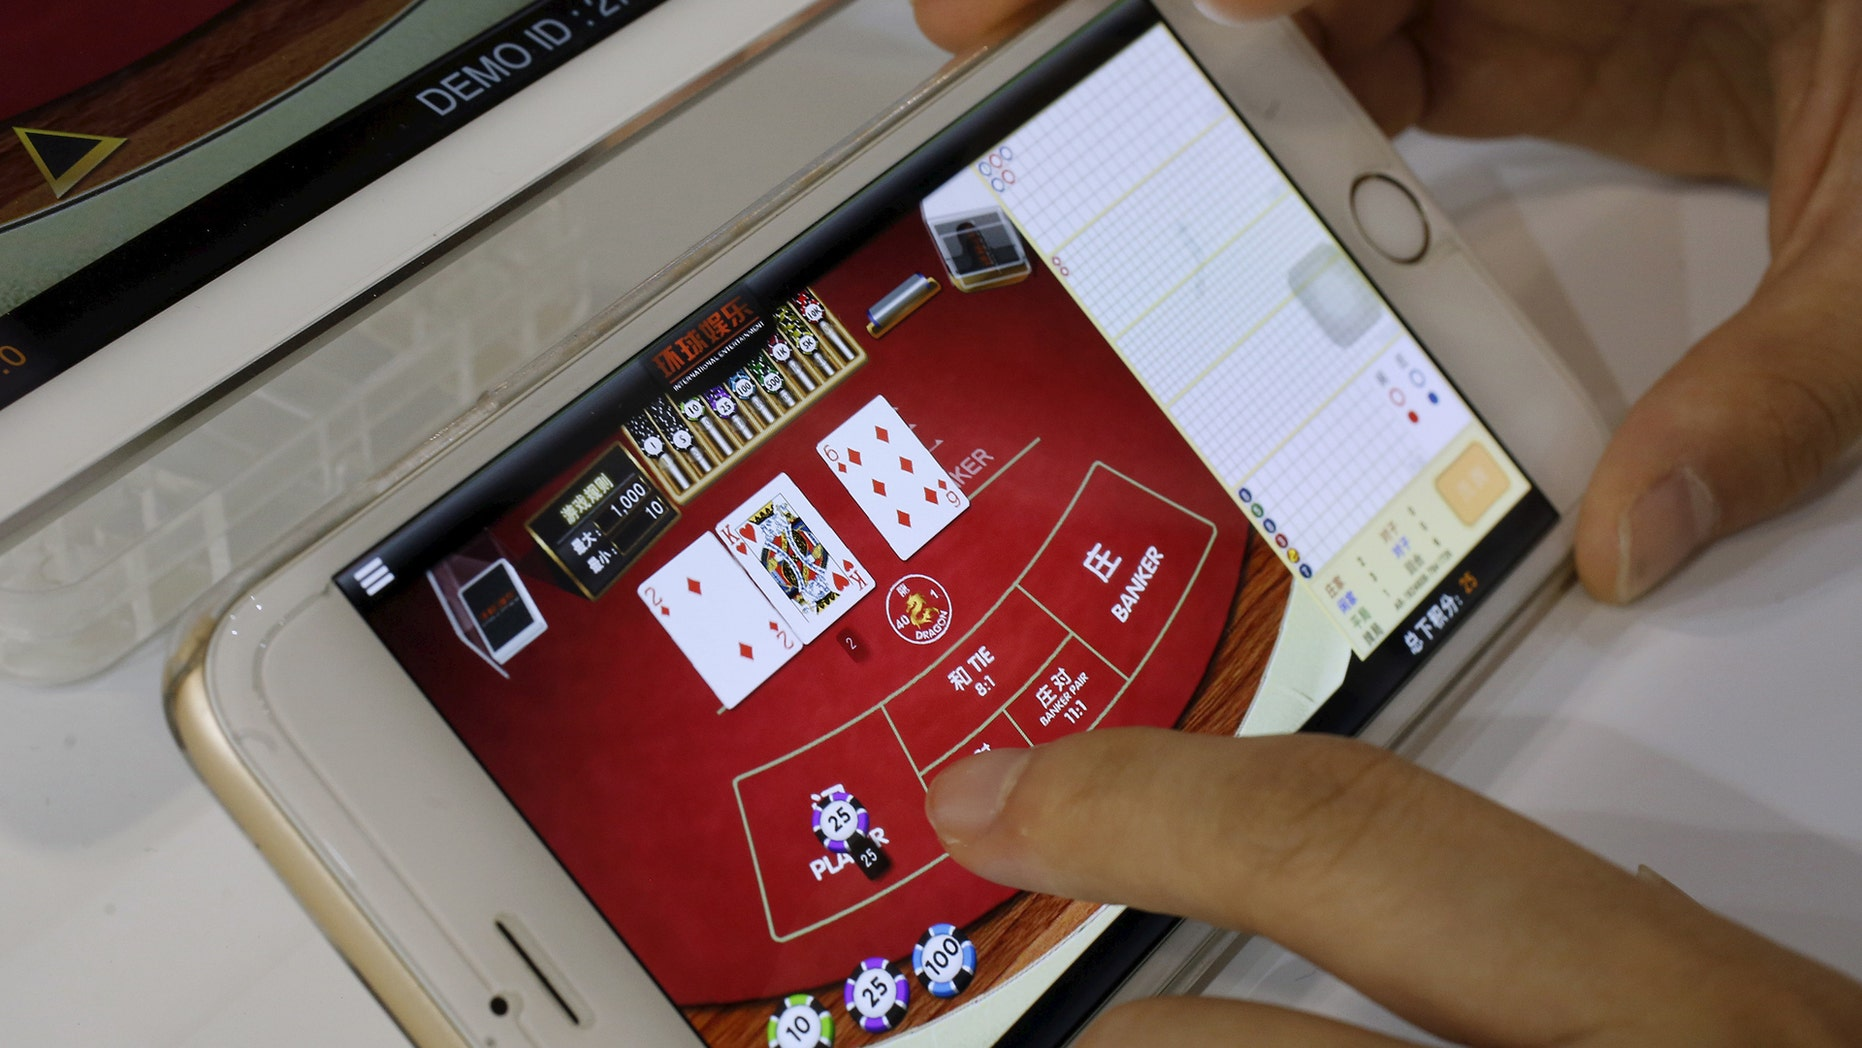 A new report says legal online gambling may be coming back to the U.S. via an audio industry executive. (REUTERS/Bobby Yip)